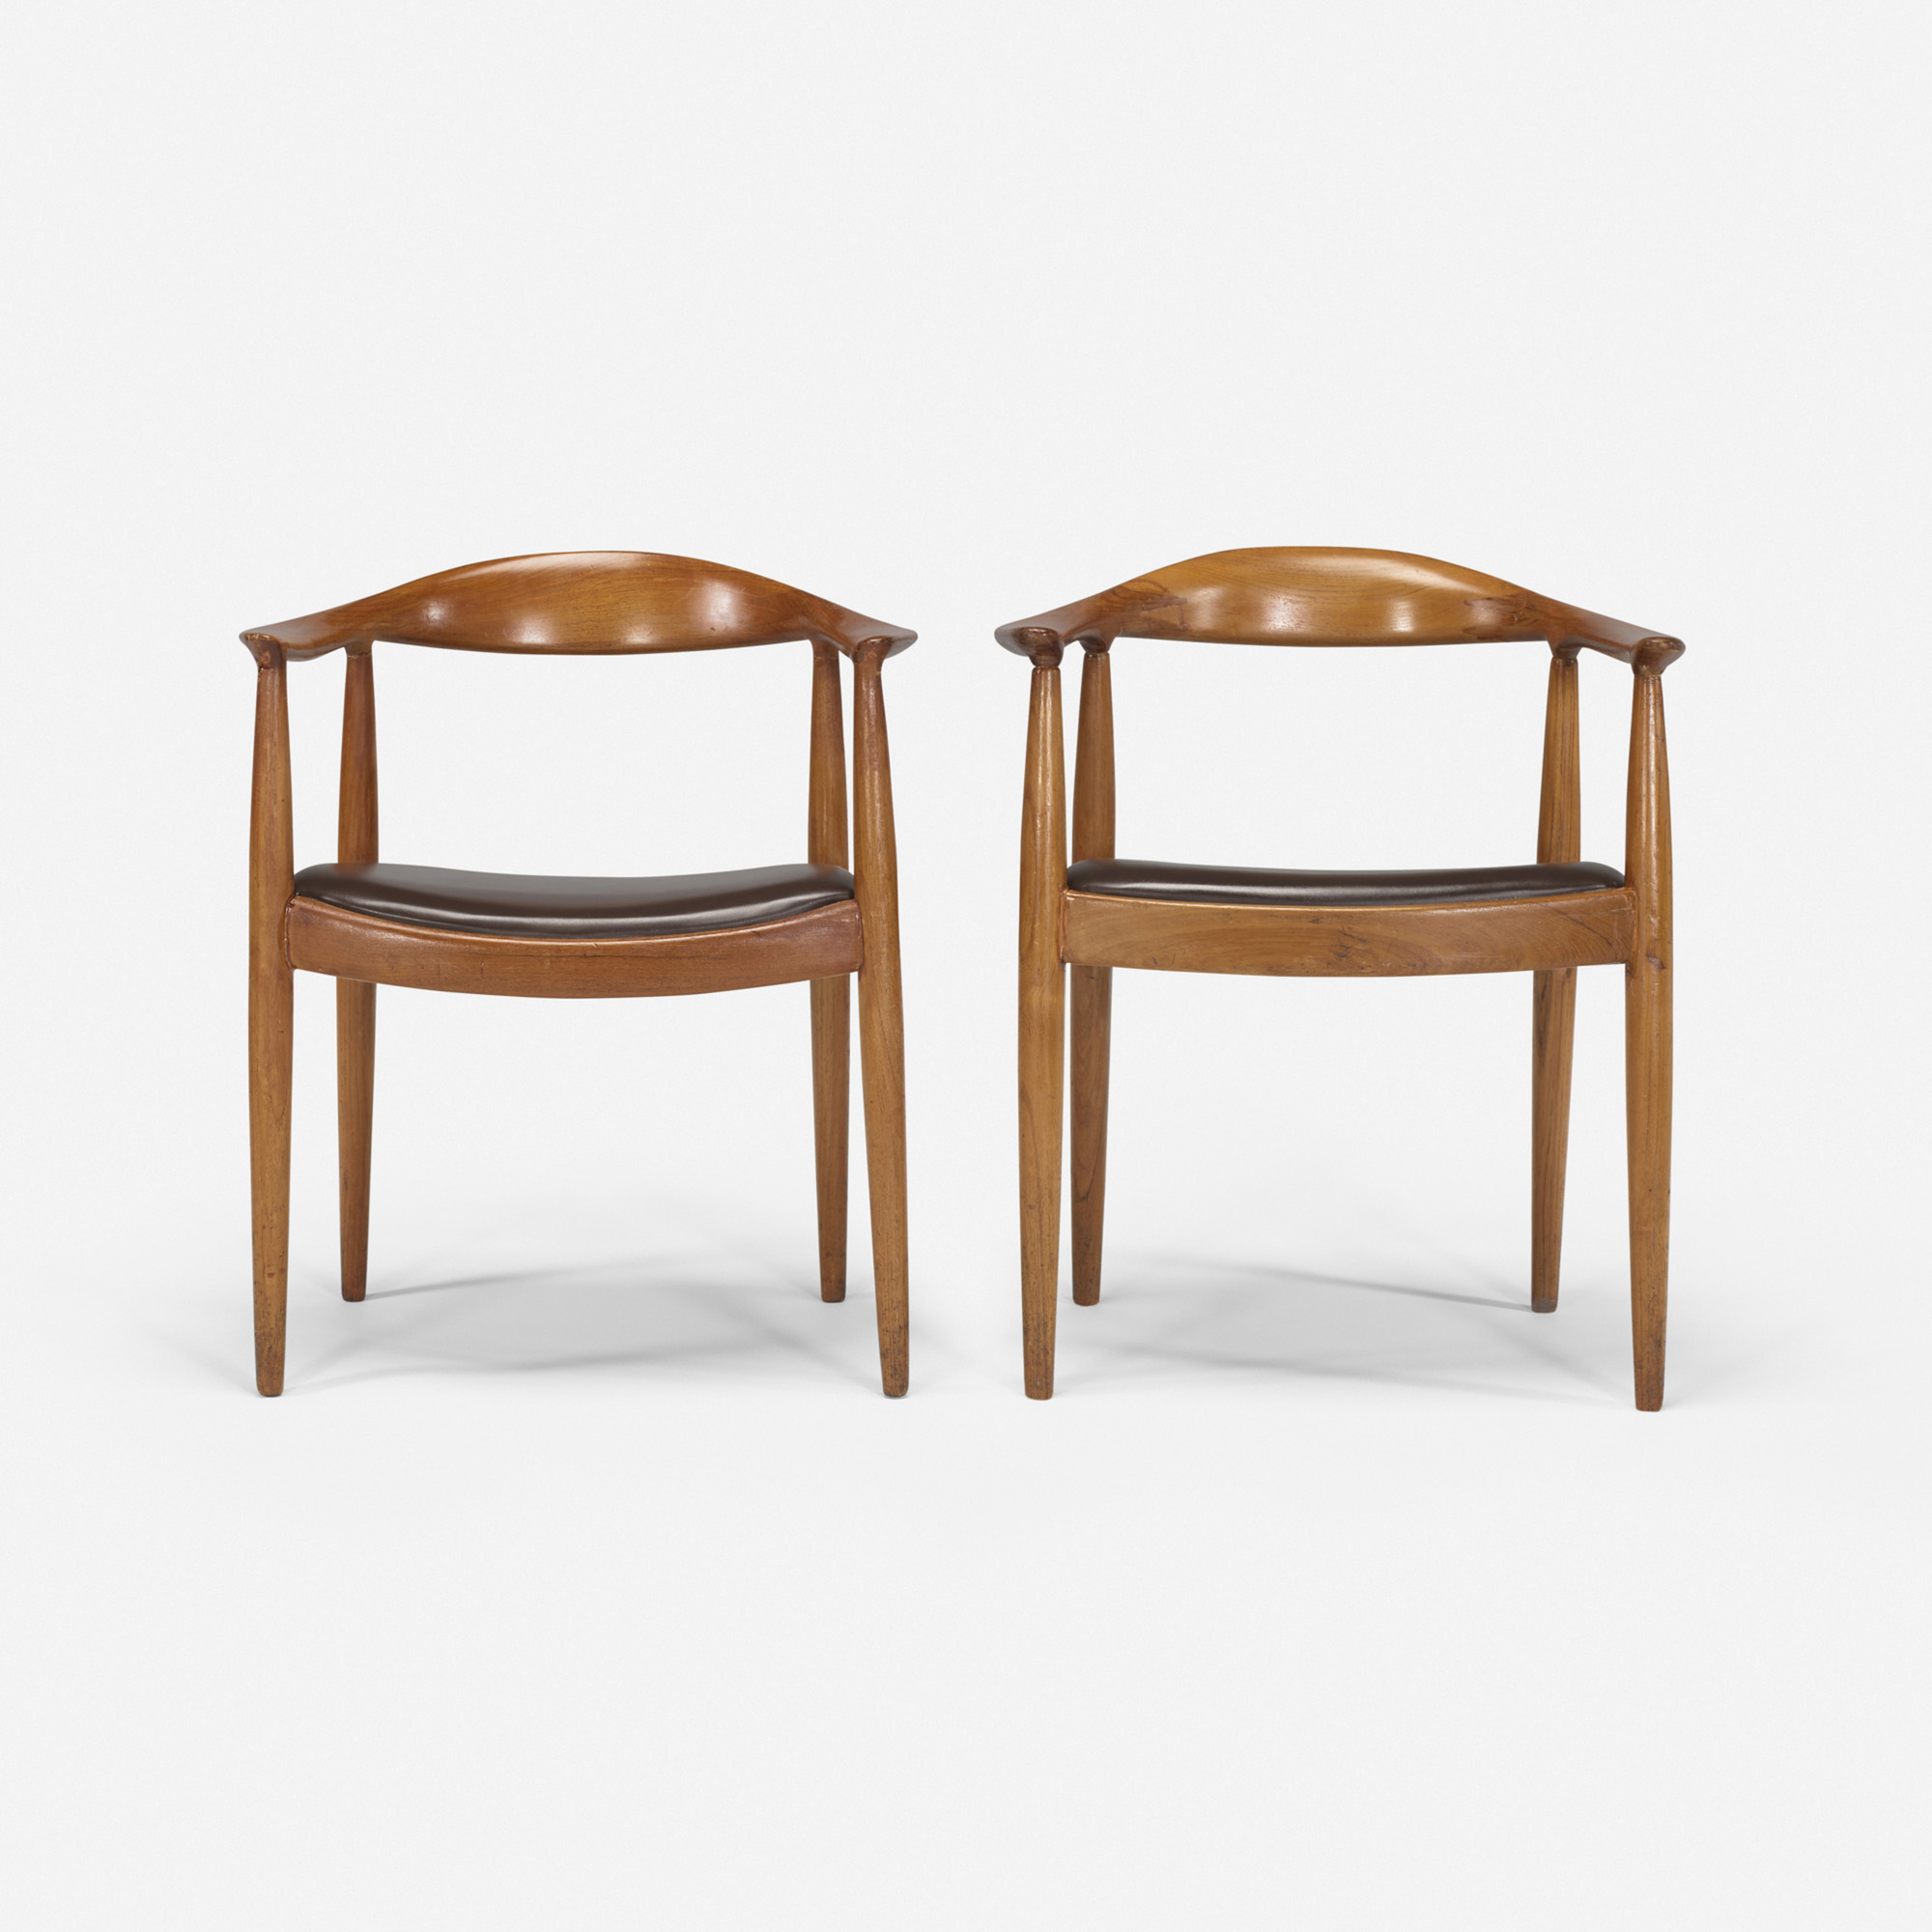 405: After Hans J.  Wegner / The Chairs from the mezzanine of the Grill Room, pair (1 of 1)